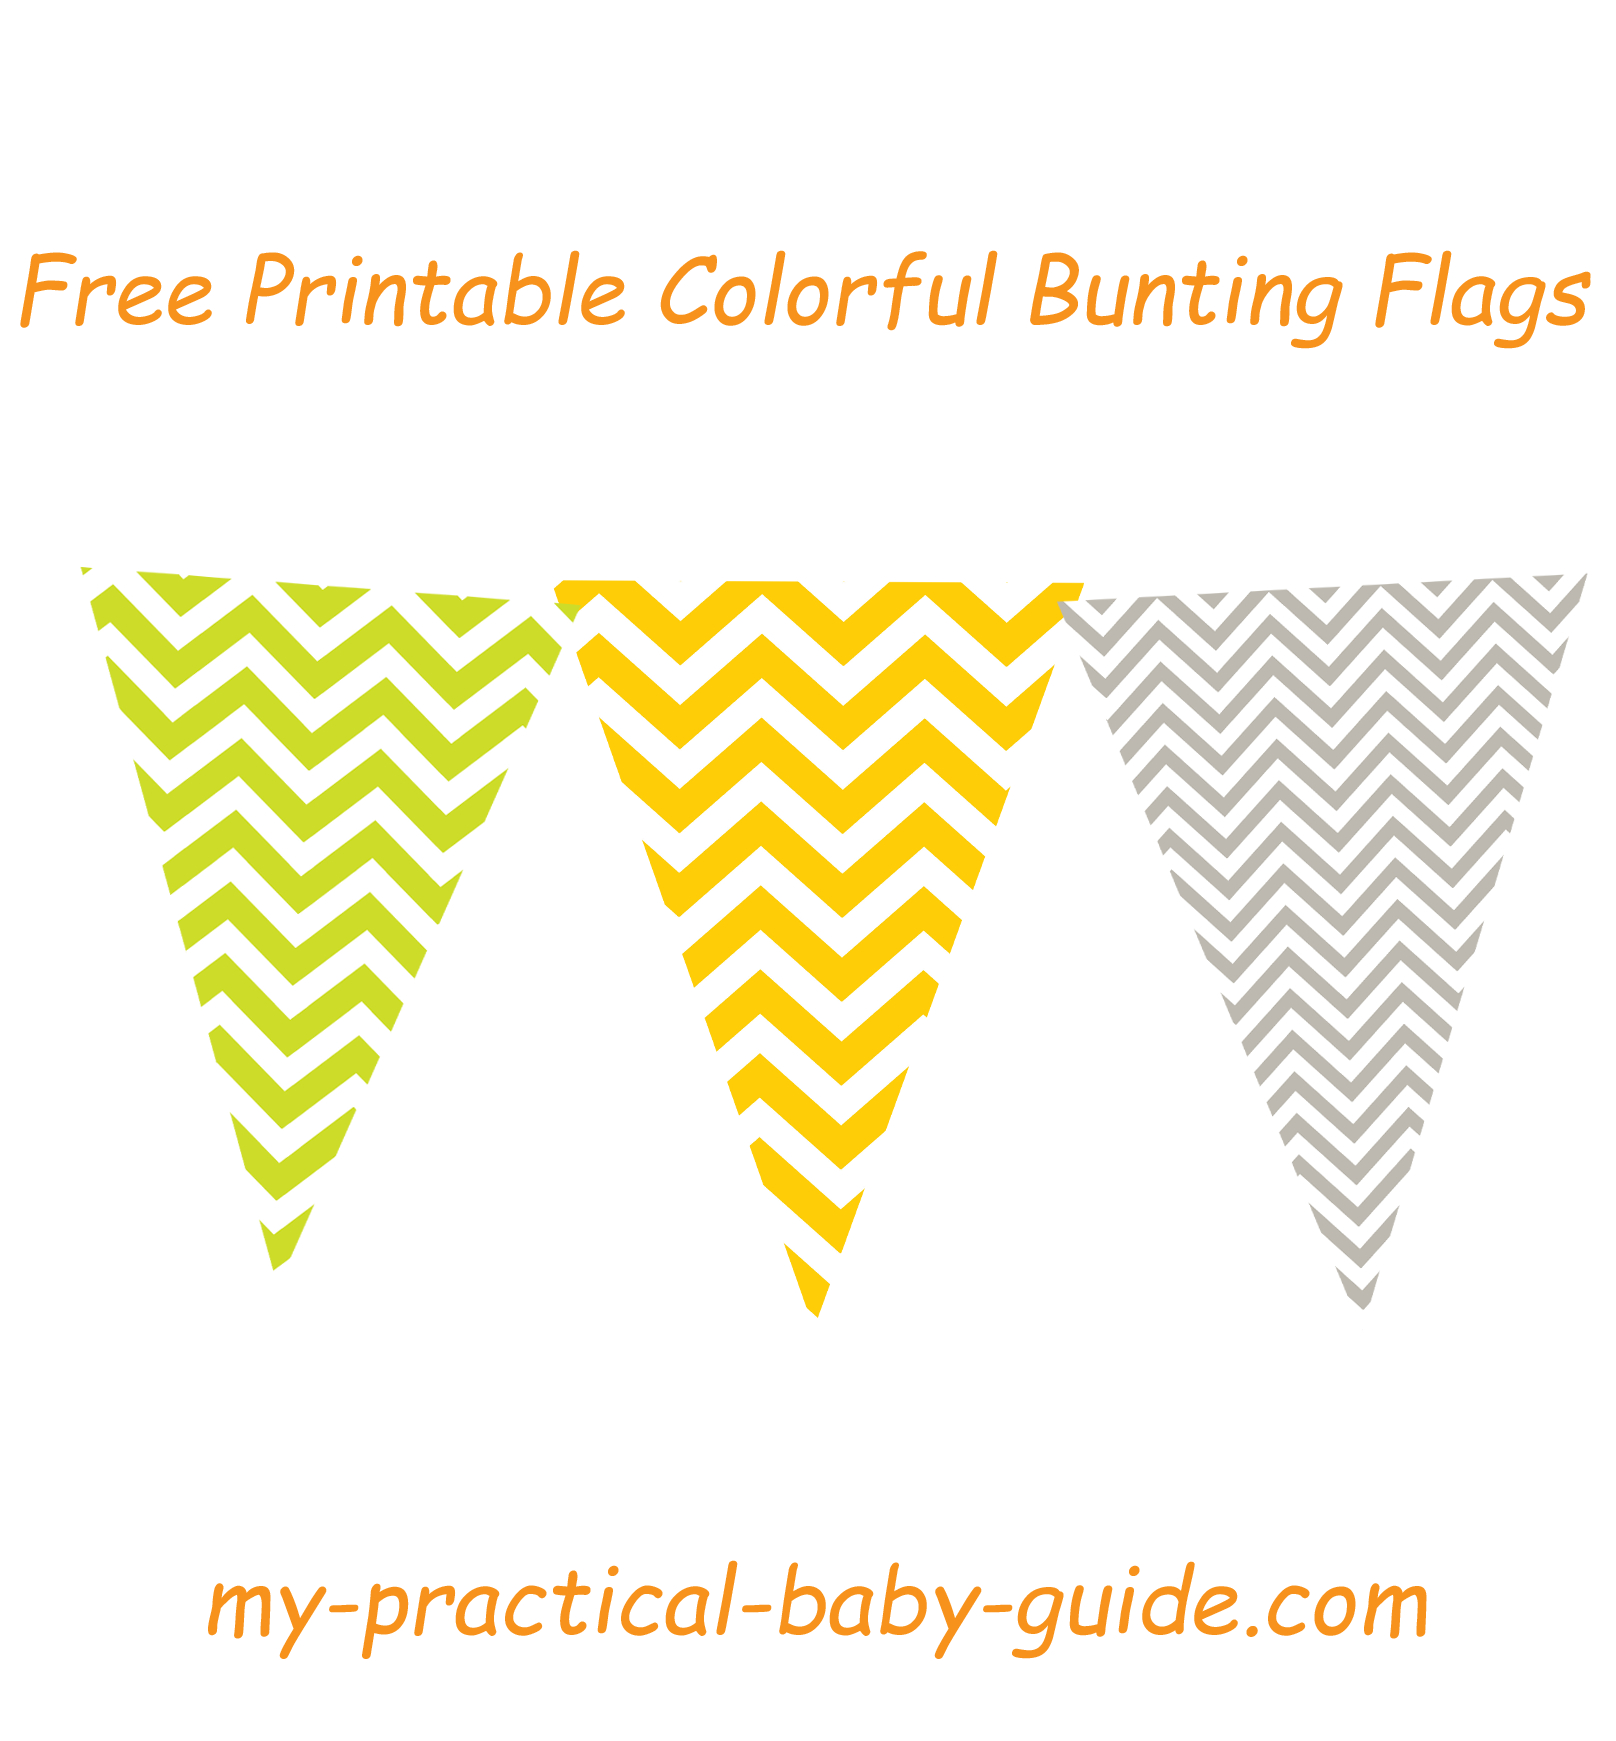 Woodland Baby Shower Theme Ideas - My Practical Baby Shower Guide - Baby Shower Bunting Free Printable